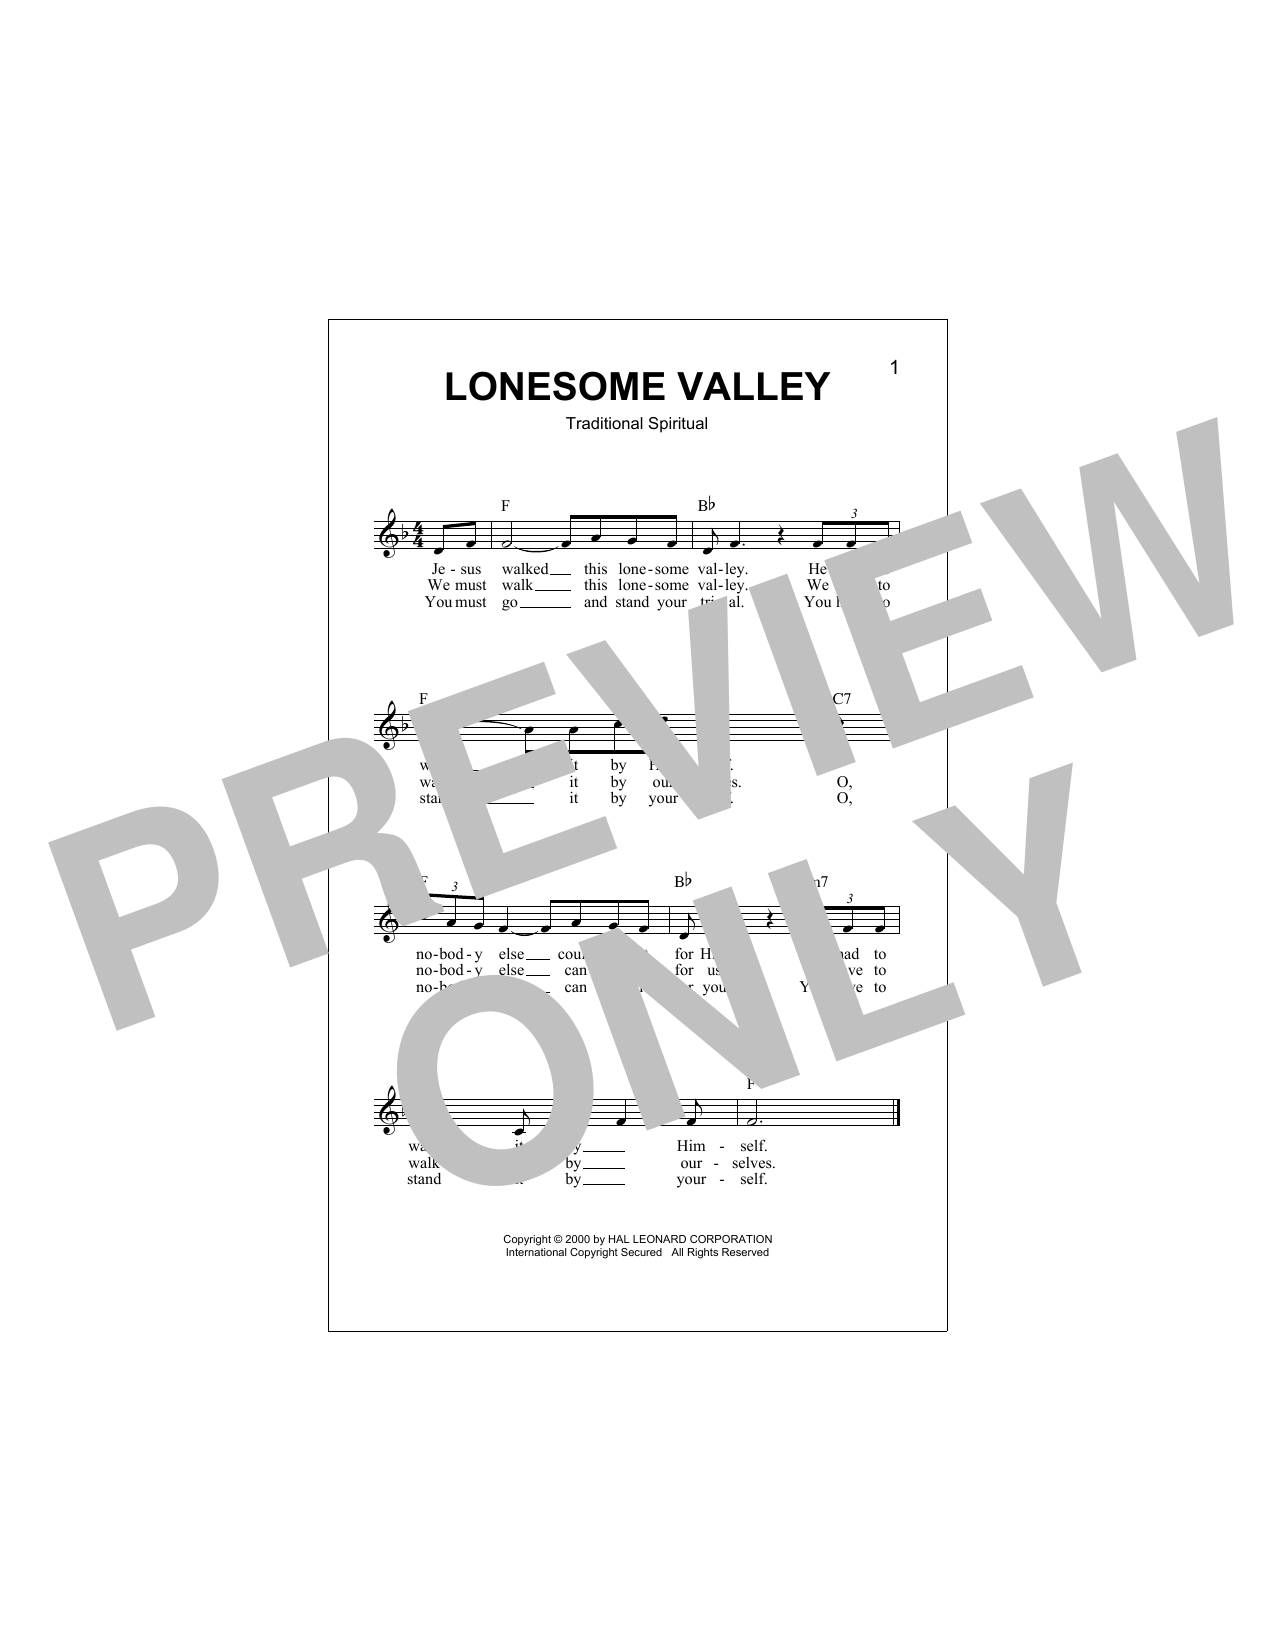 lonesome valley chords